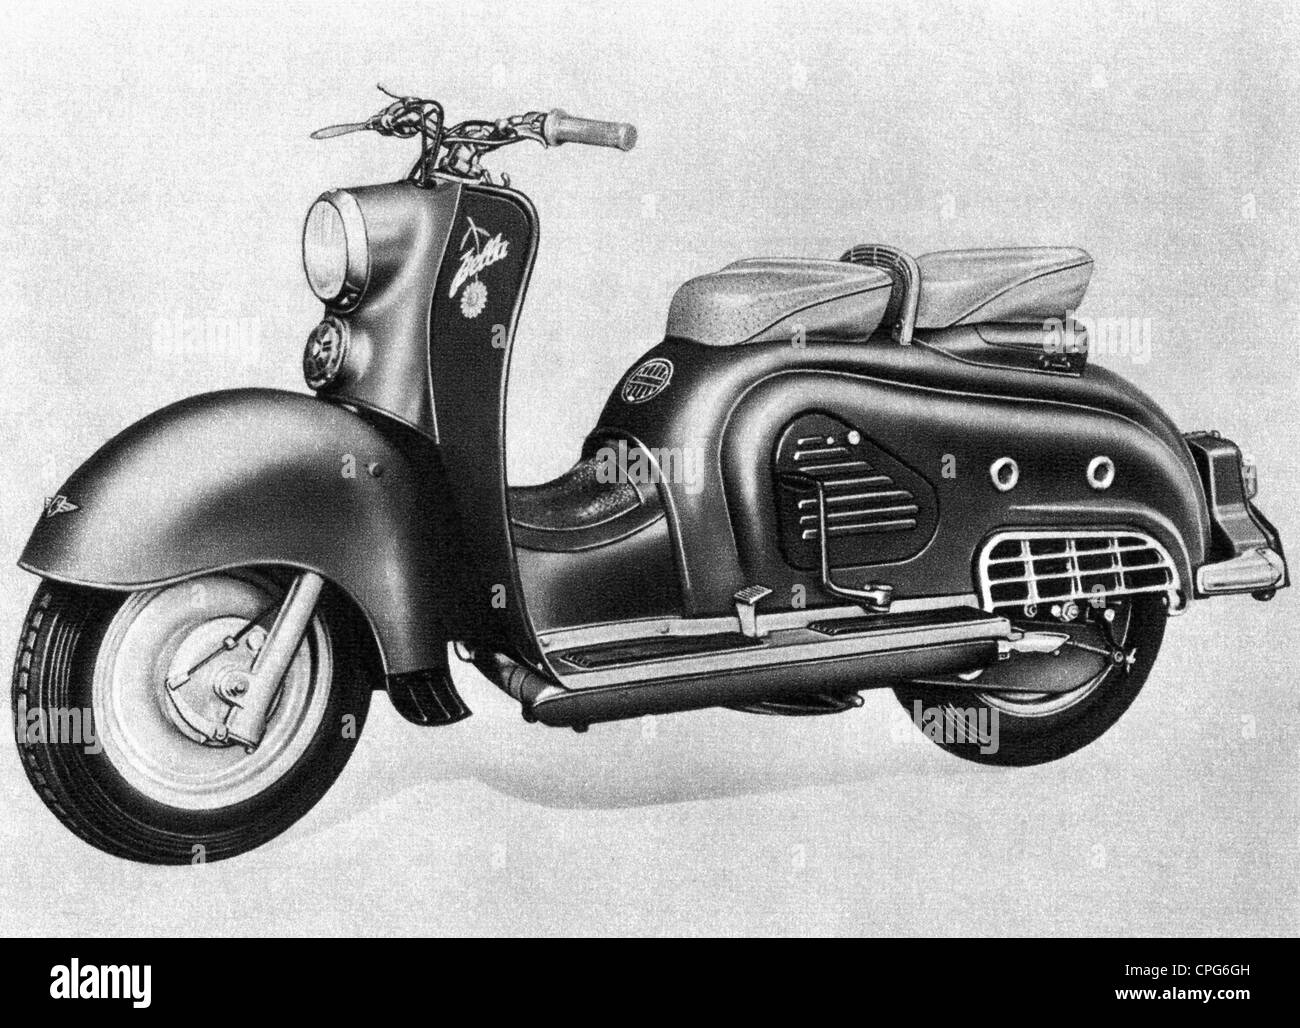 Trasporti / trasporto, motociclo, Zuendapp Bella moto-scooter, 1954, Additional-Rights-Clearences-NA Immagini Stock